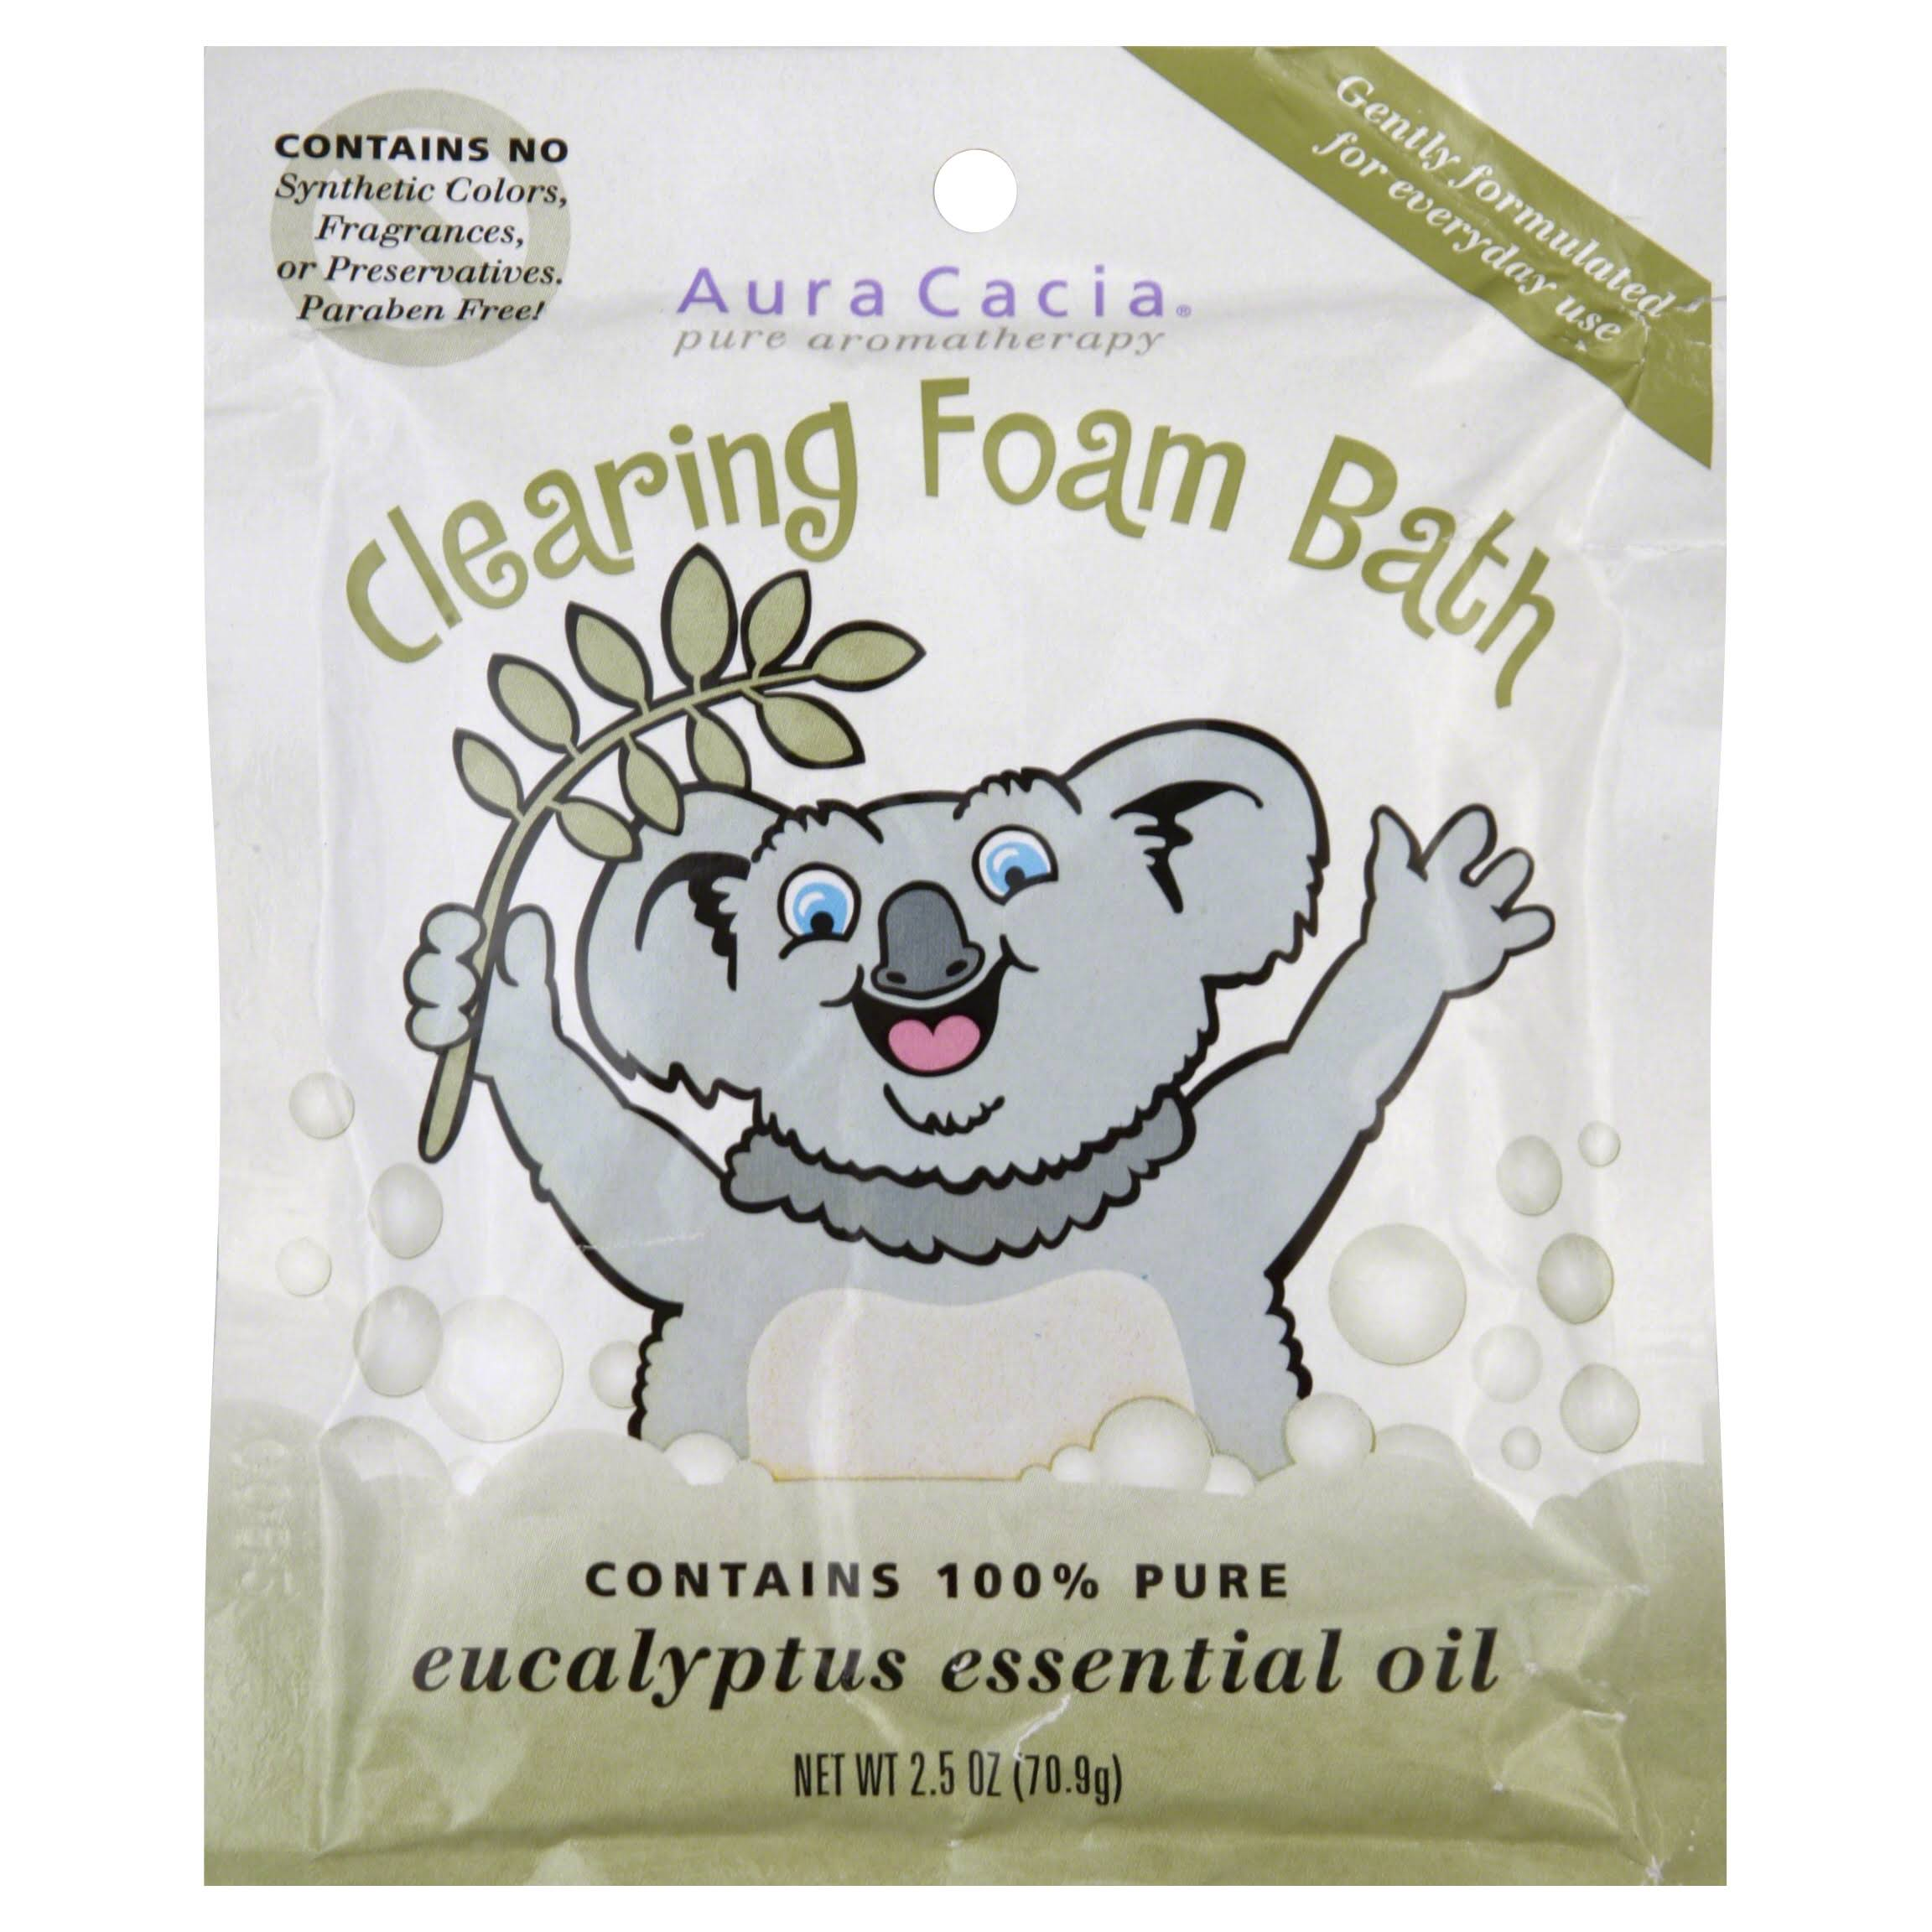 Aura Cacia Kids Clearing Foam Bath